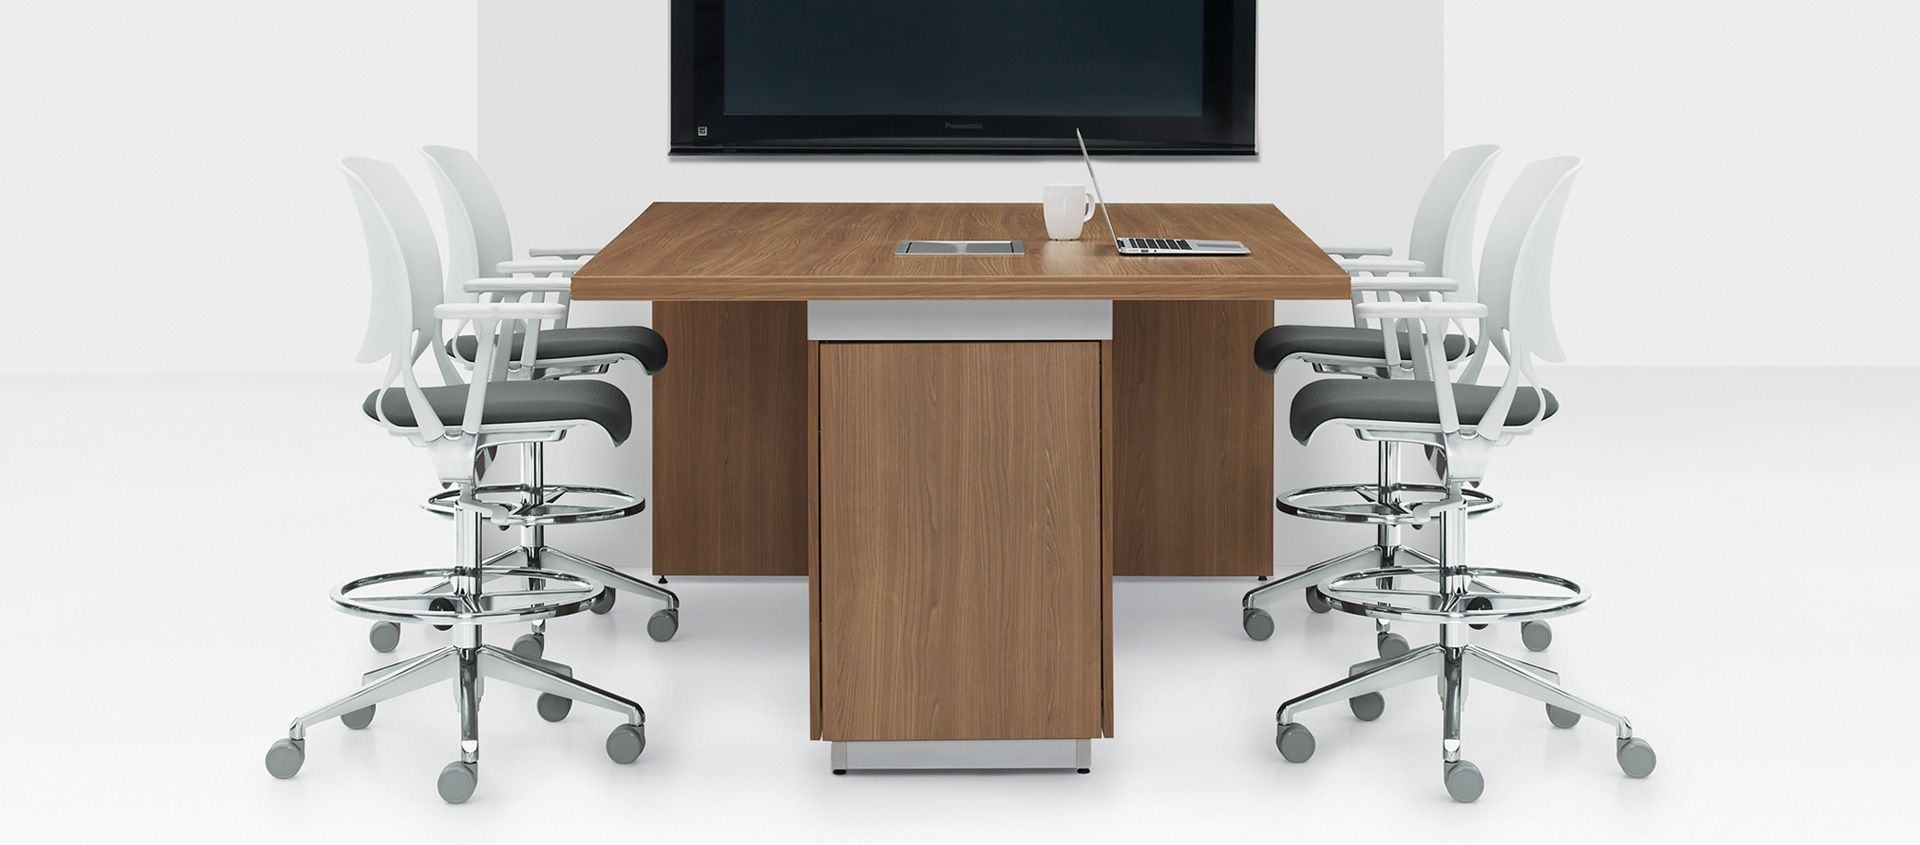 Global Zira Table Conference Pinterest Tables Office - Global conference table